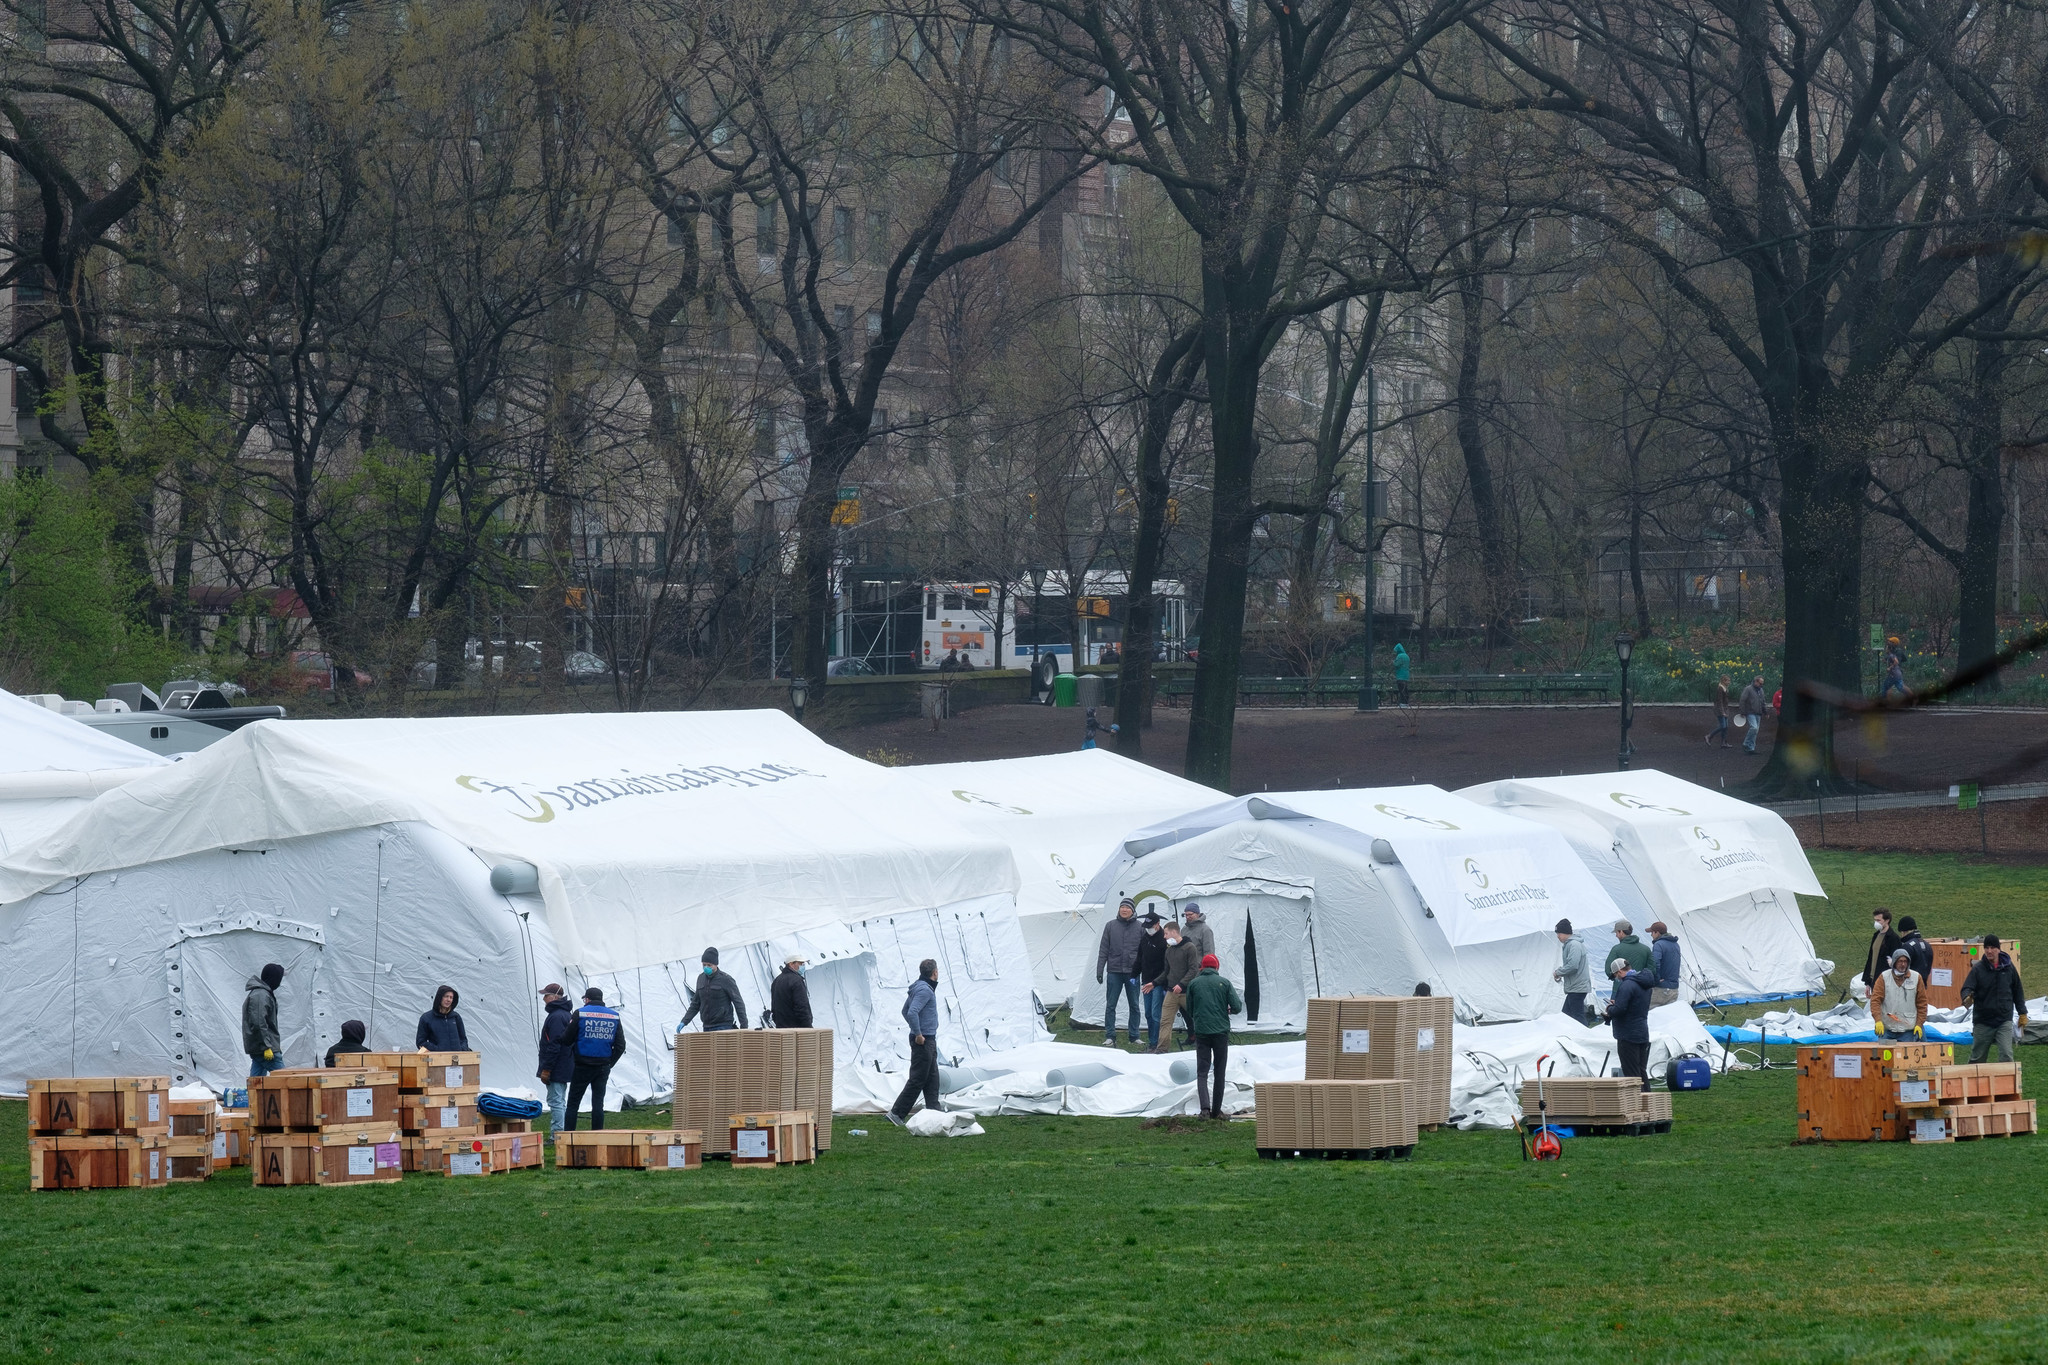 Field hospital to fight coronavirus goes up in Central Park